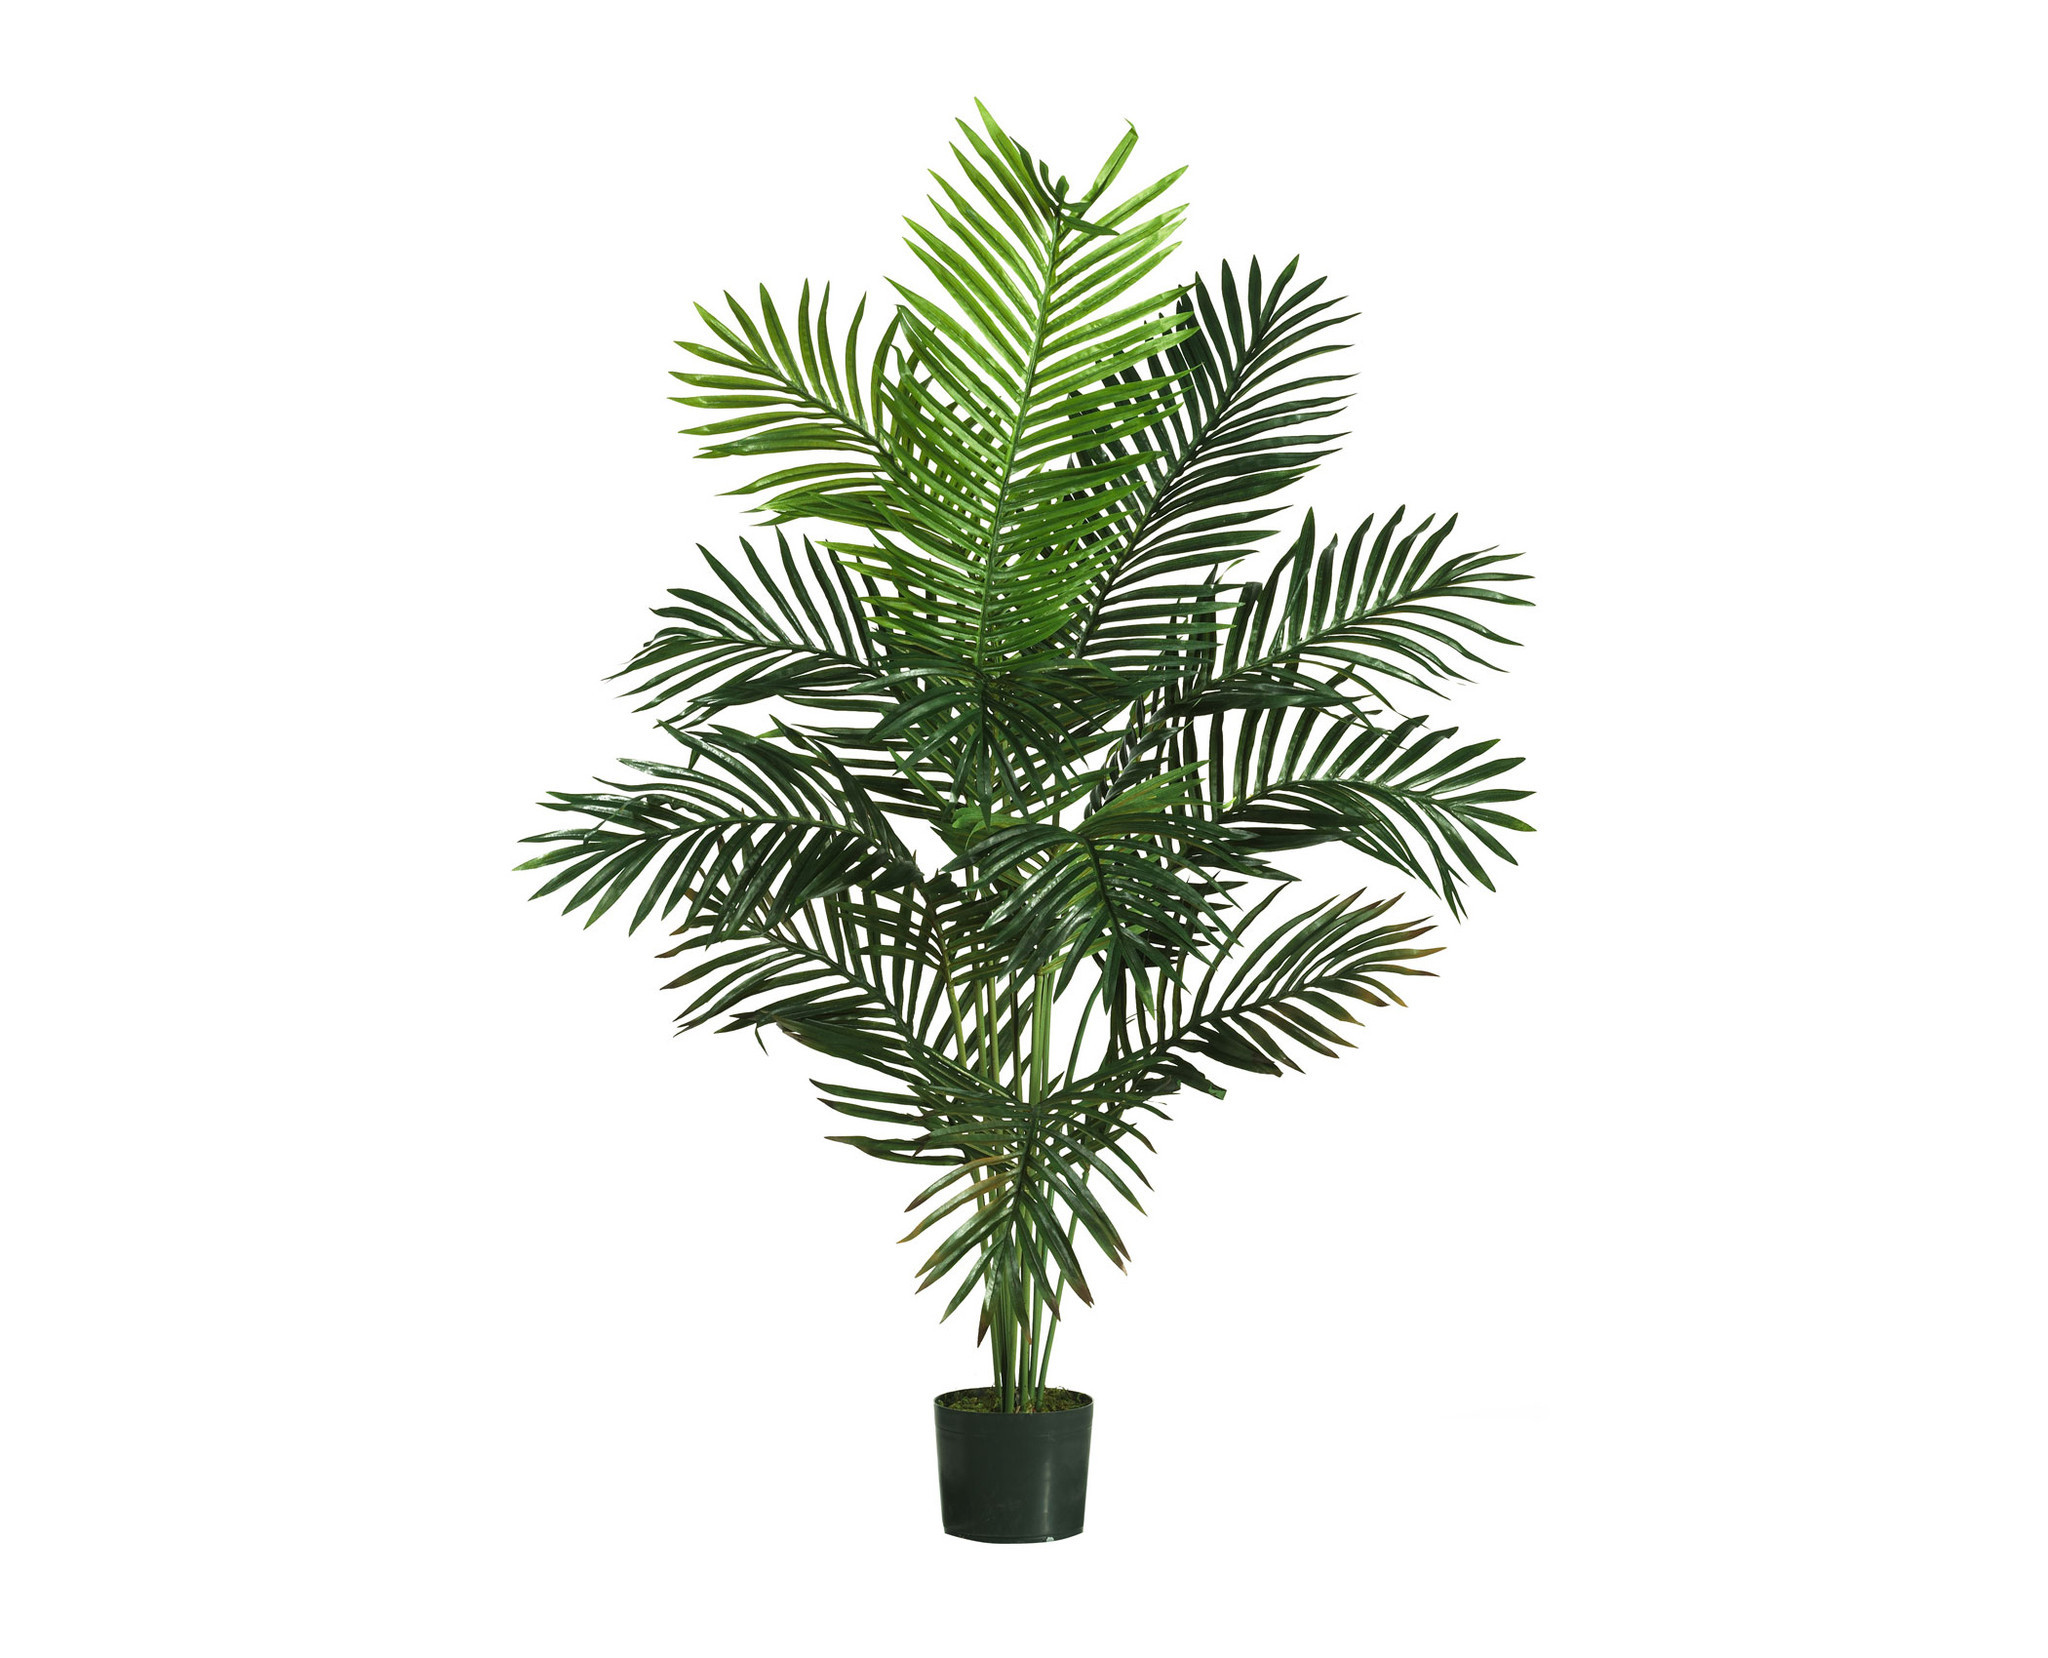 Palm Plant in a Pot 460.28 Kb